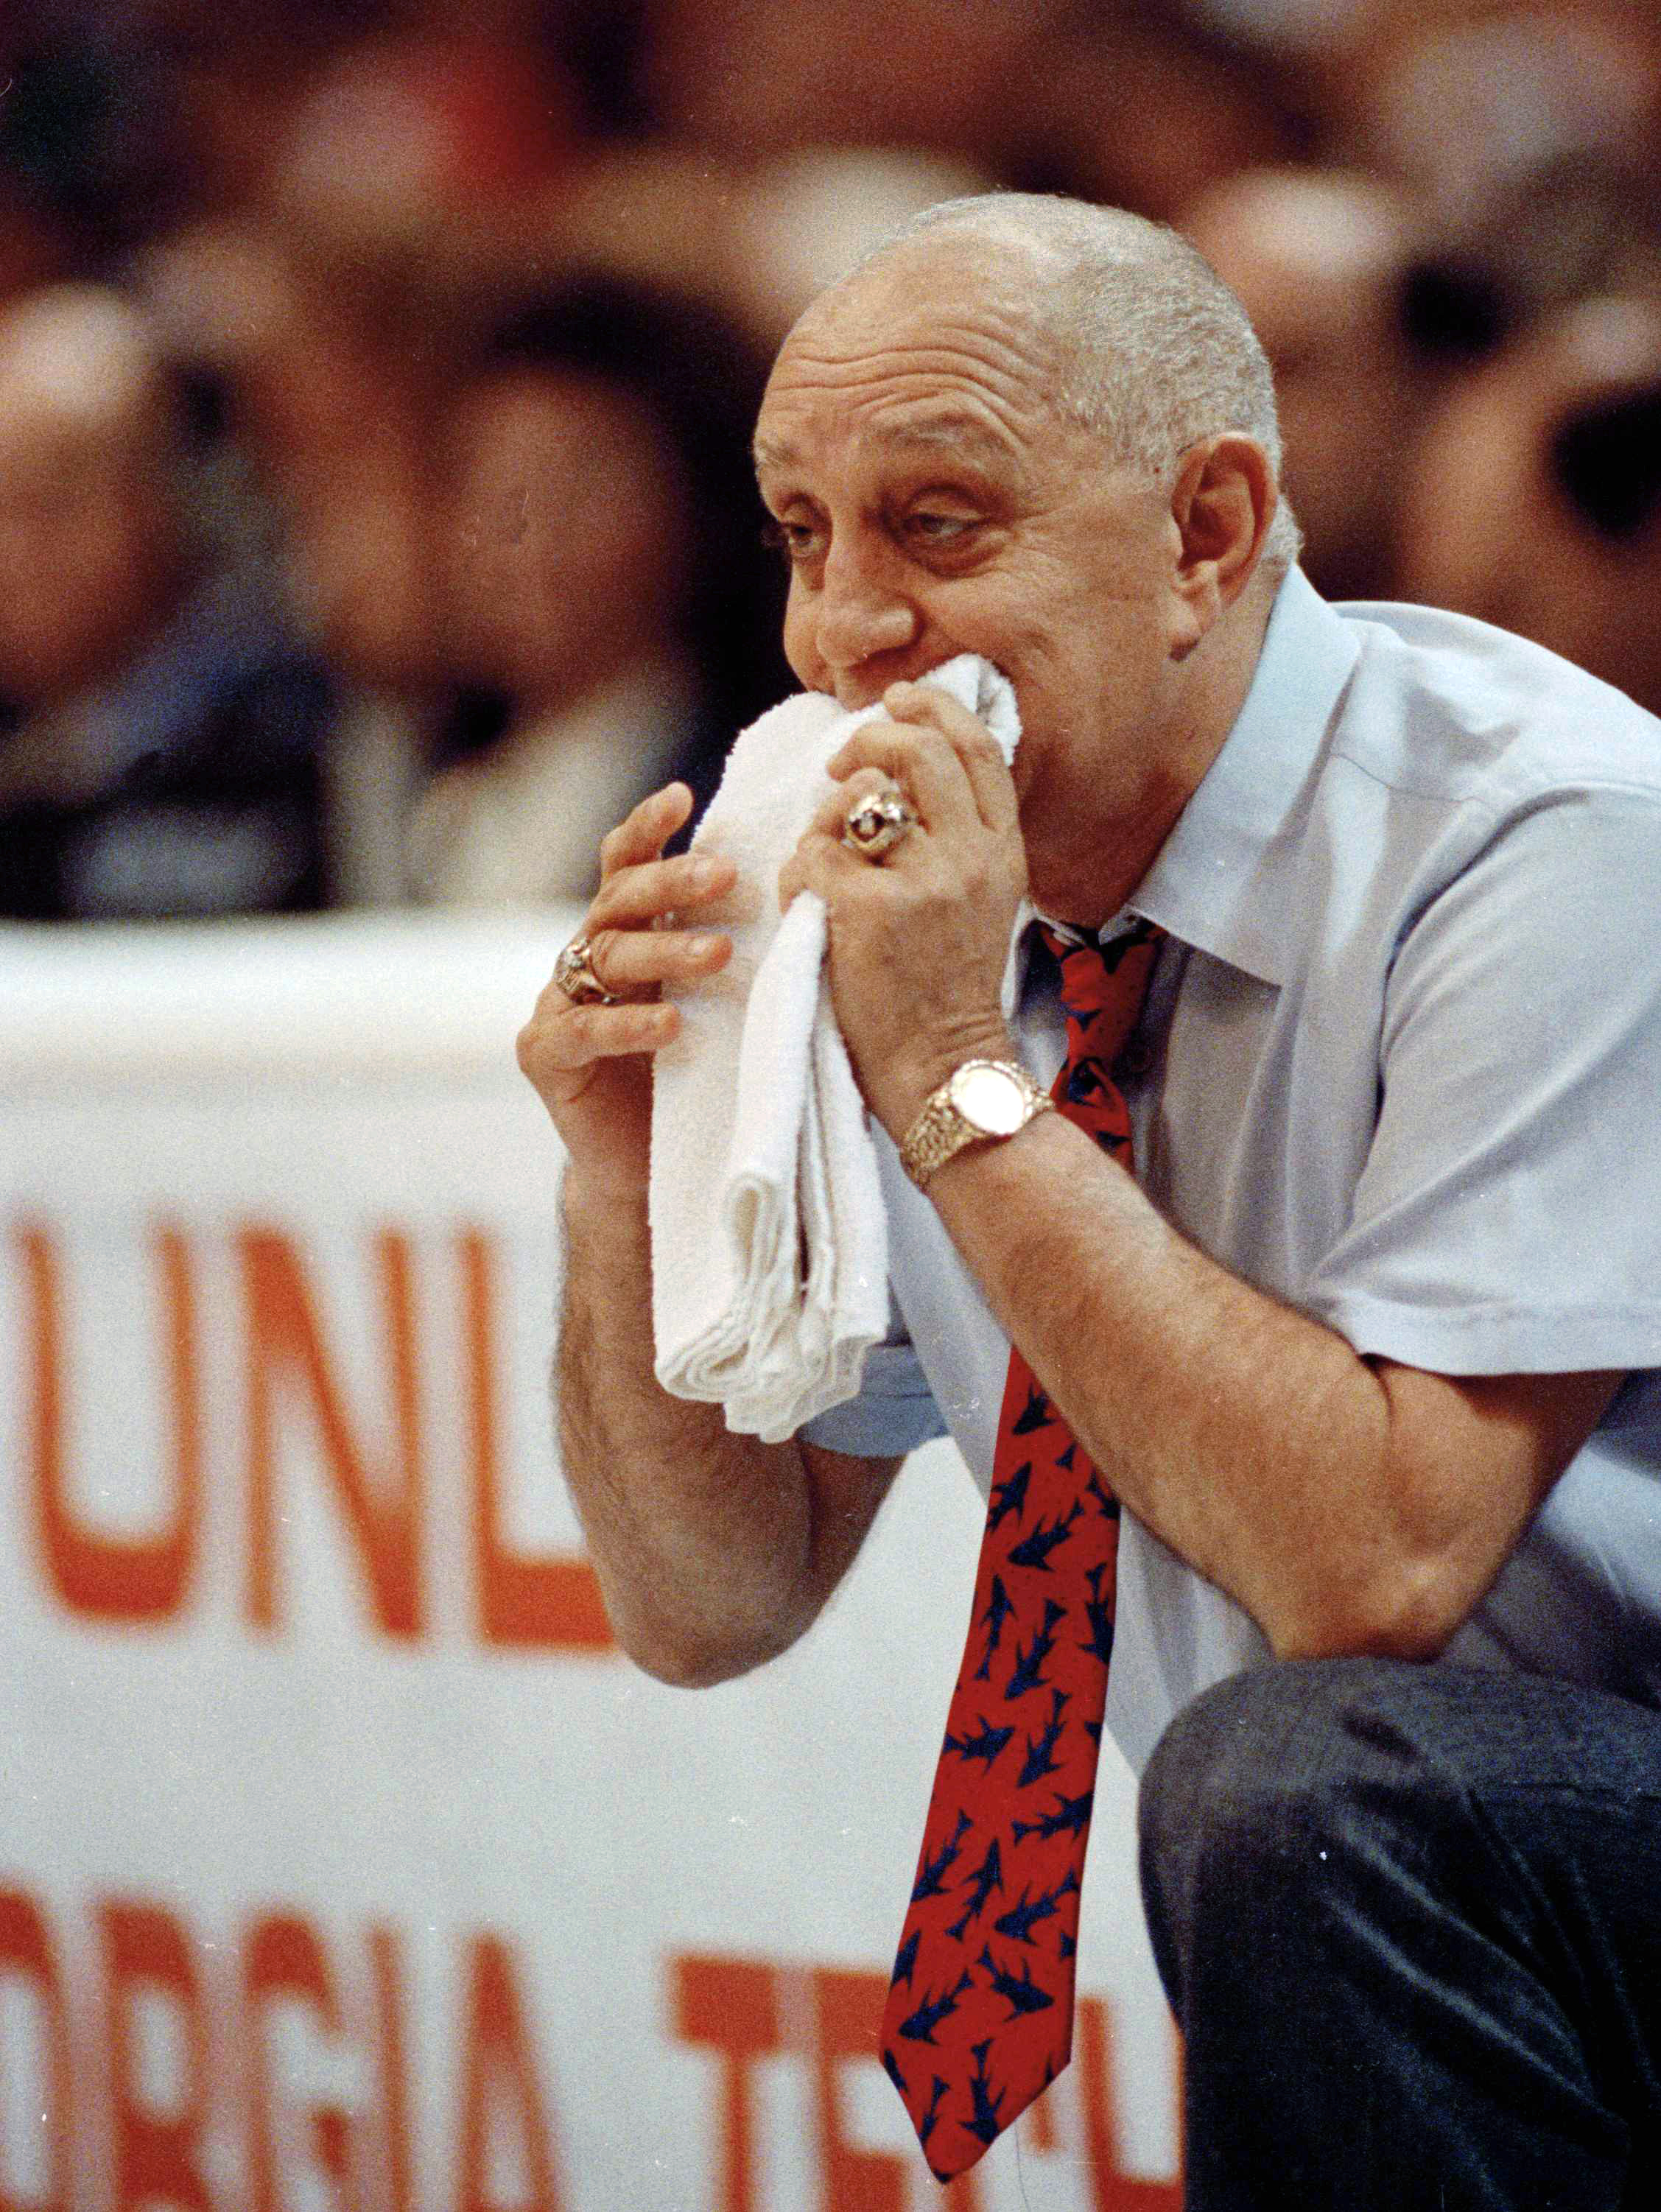 FILE - In this April 2, 1990, file photo, UNLV coach Jerry Tarkanian chews on his towel while watching his team play Duke in the championship game of the NCAA college basketball Final Four in Denver. The Hall of Fame coach who built a basketball dynasty a